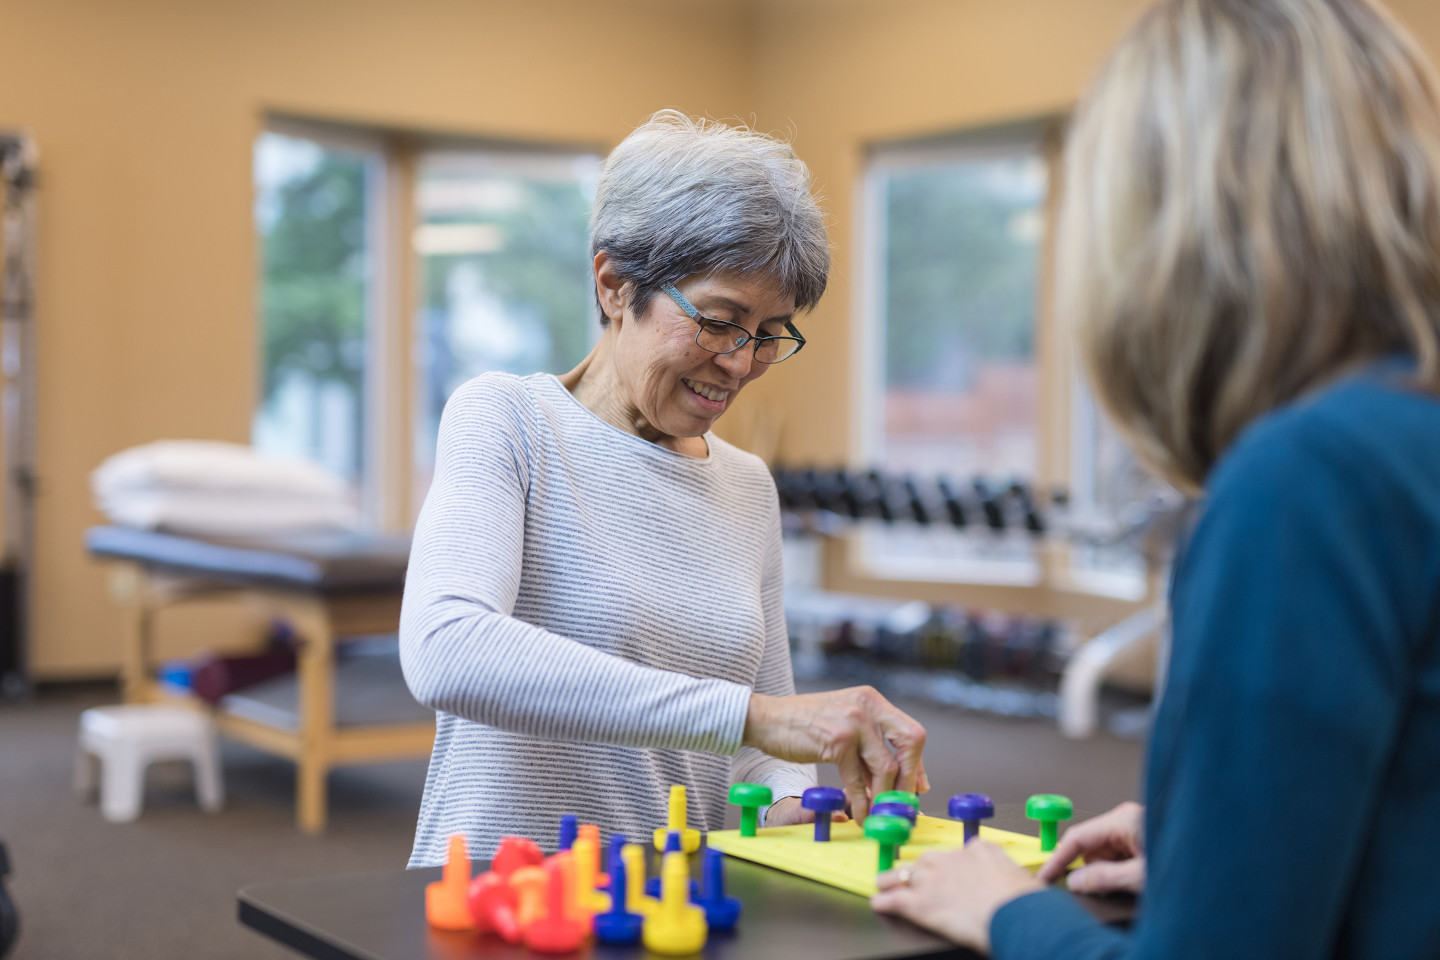 An occupational therapist works with a senior Caucasian woman They are seated at a table and they are doing a fun exercise that involves putting pegs into a plastic board.